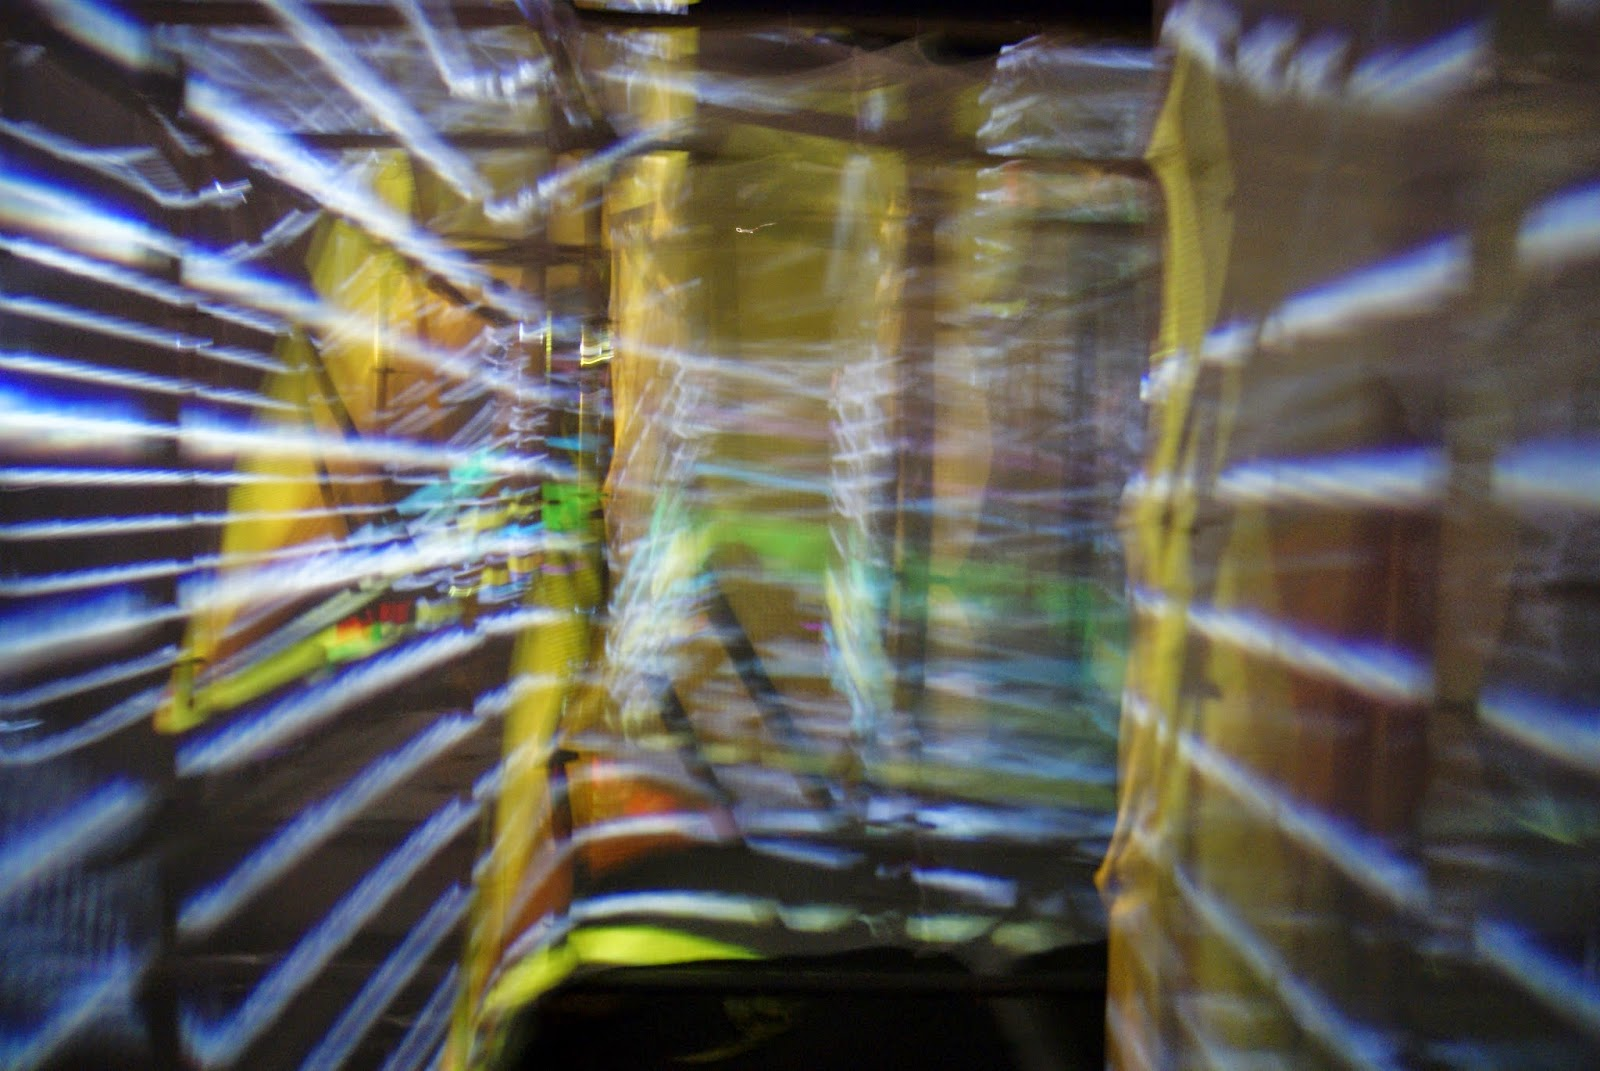 Toronto Nuit Blanche 2014: Inside the Amaze Maze, 2014 by Marcos Zotes, Culture, Art, Artmatters, The Purple Scarf, Melanie.Ps, Ontario, Canada